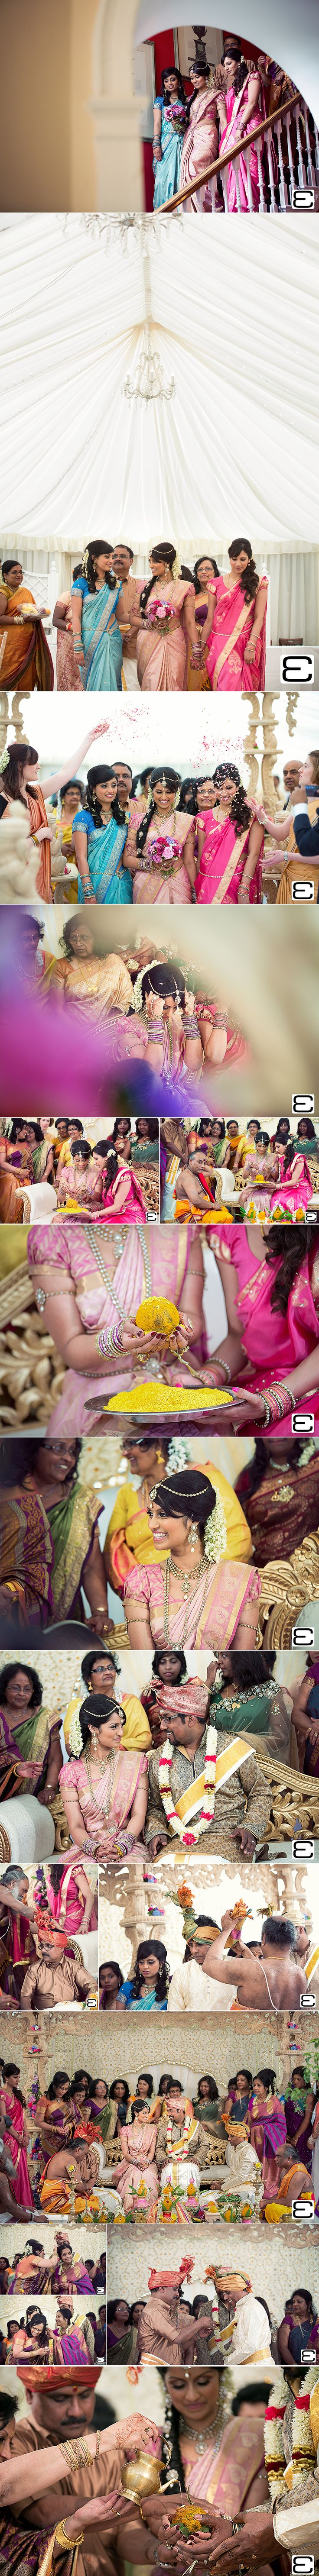 wedding card manufacturers in tamilnadu%0A Tamil Wedding Photography